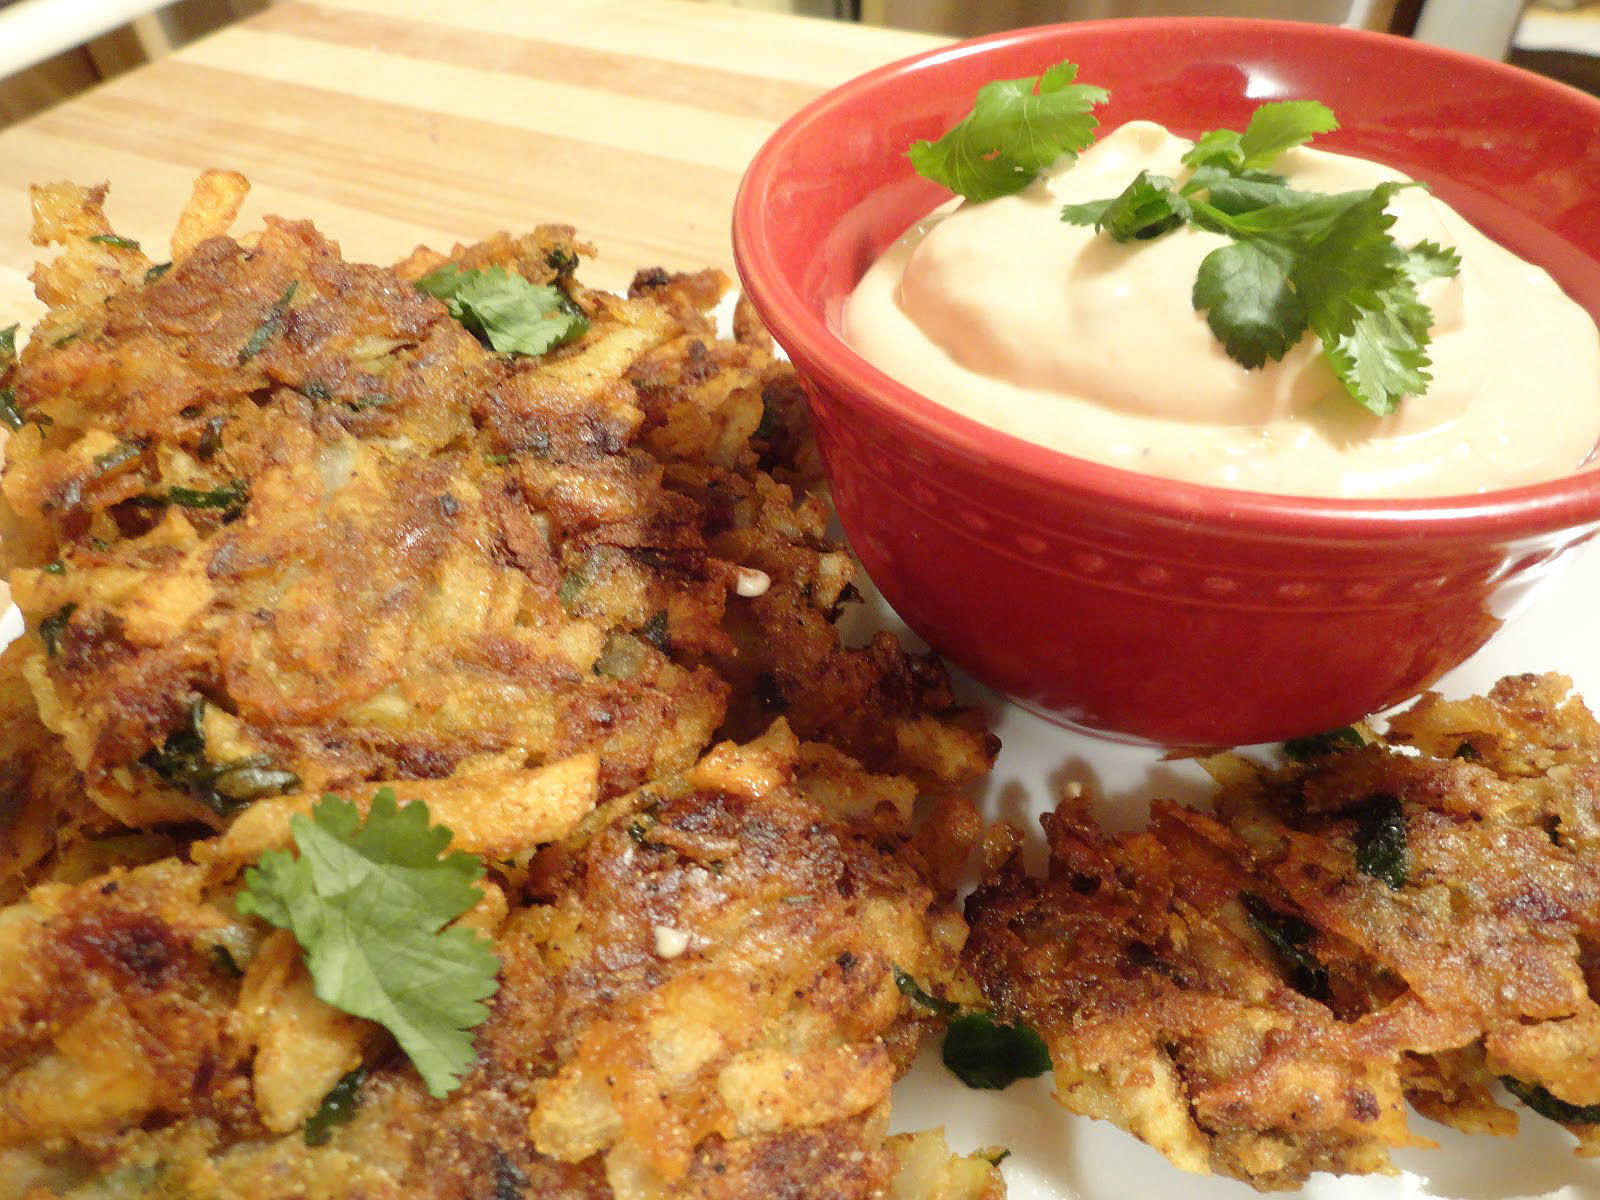 Spanish Potato Latkes with Chipotle Sour Cream